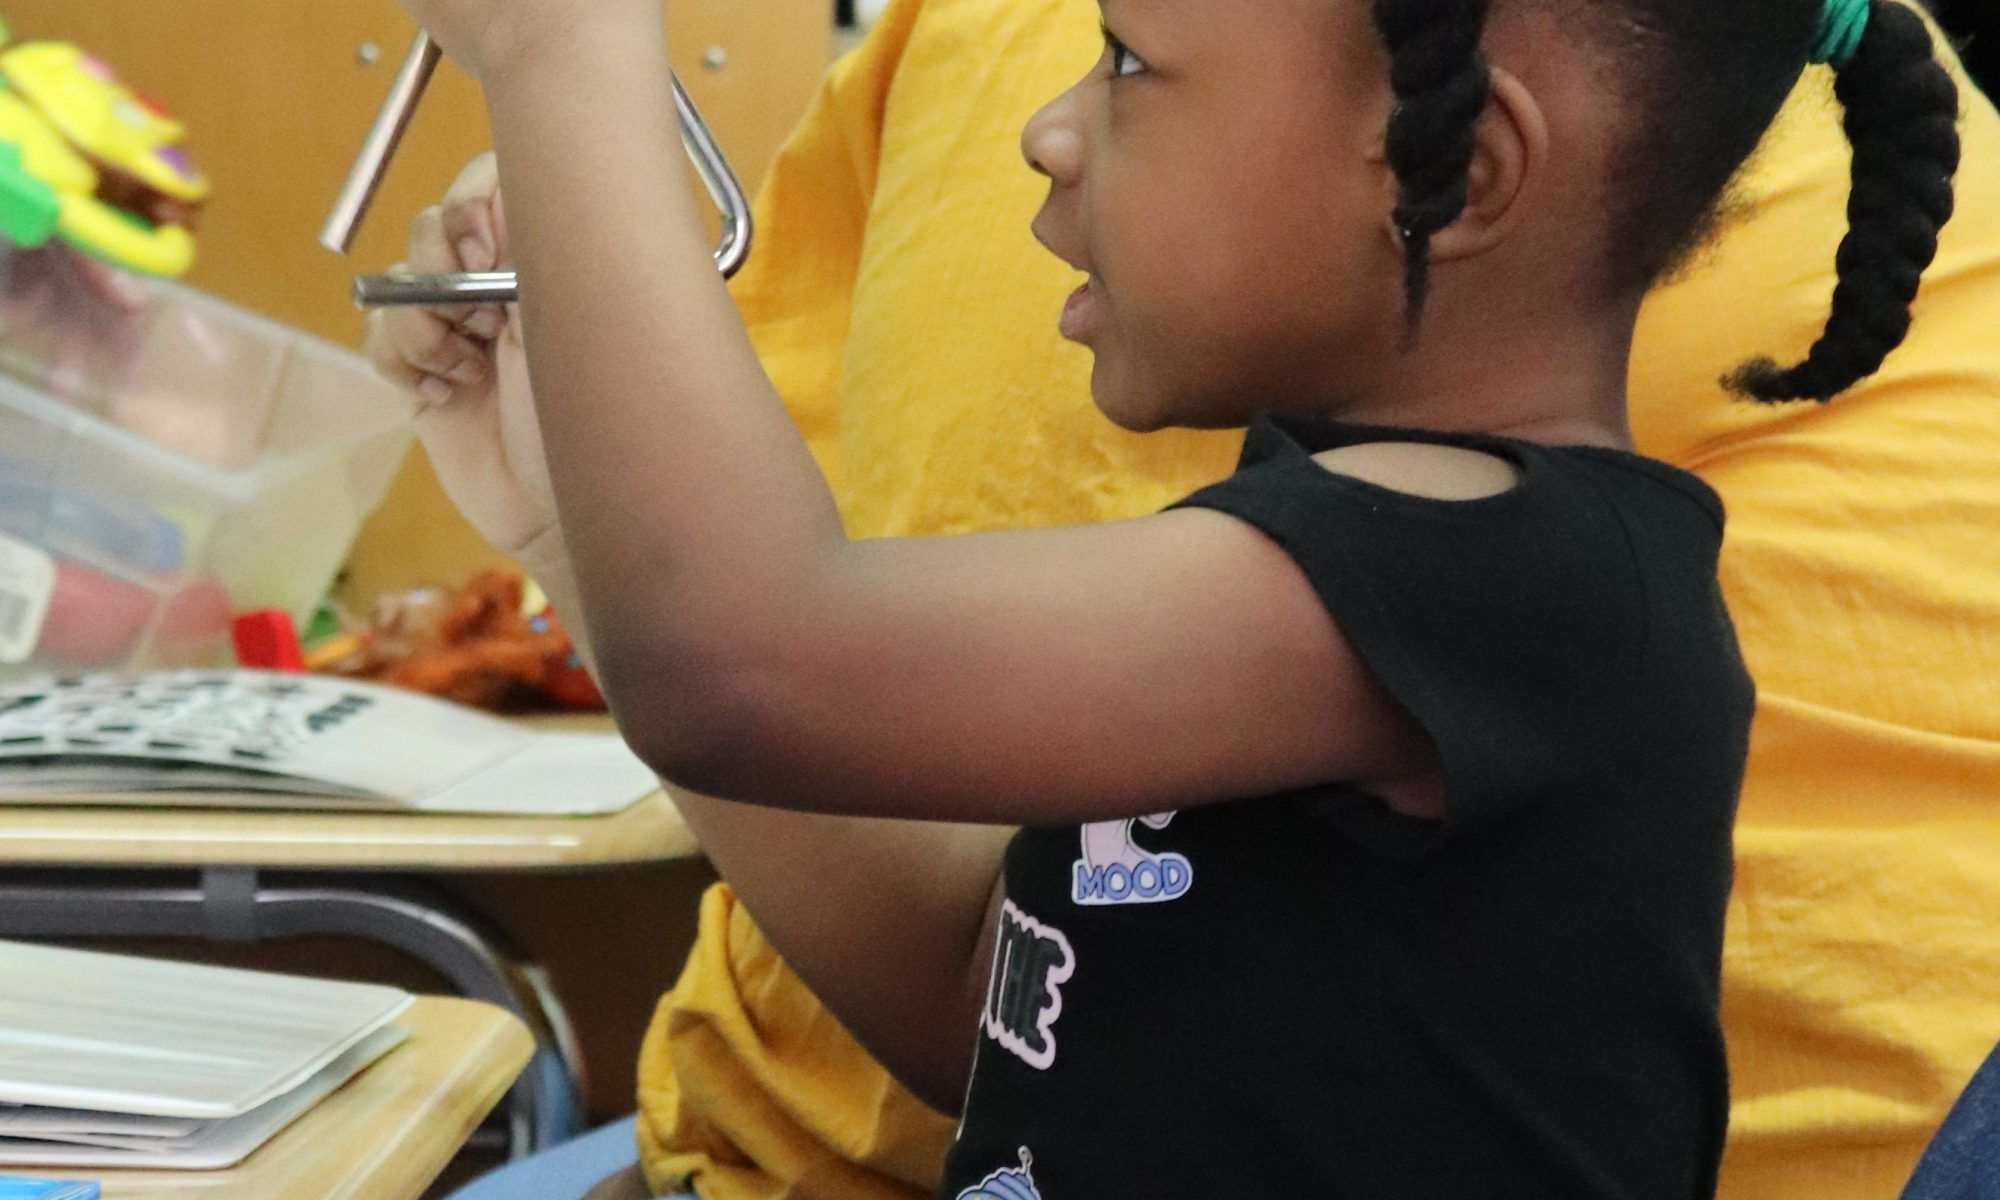 A young girl seated at her desk rings a triangle during a math lesson.